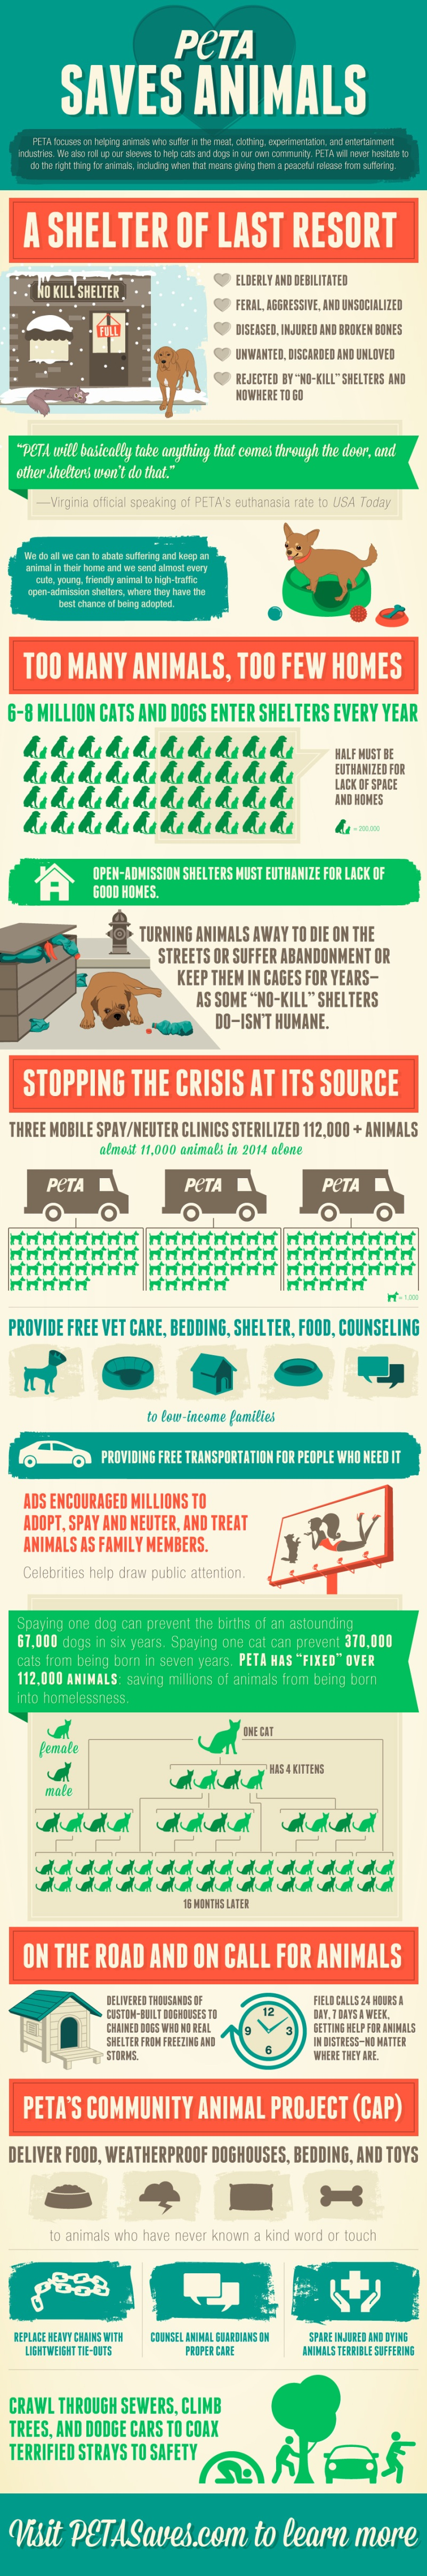 PETA-Saves-Infographic